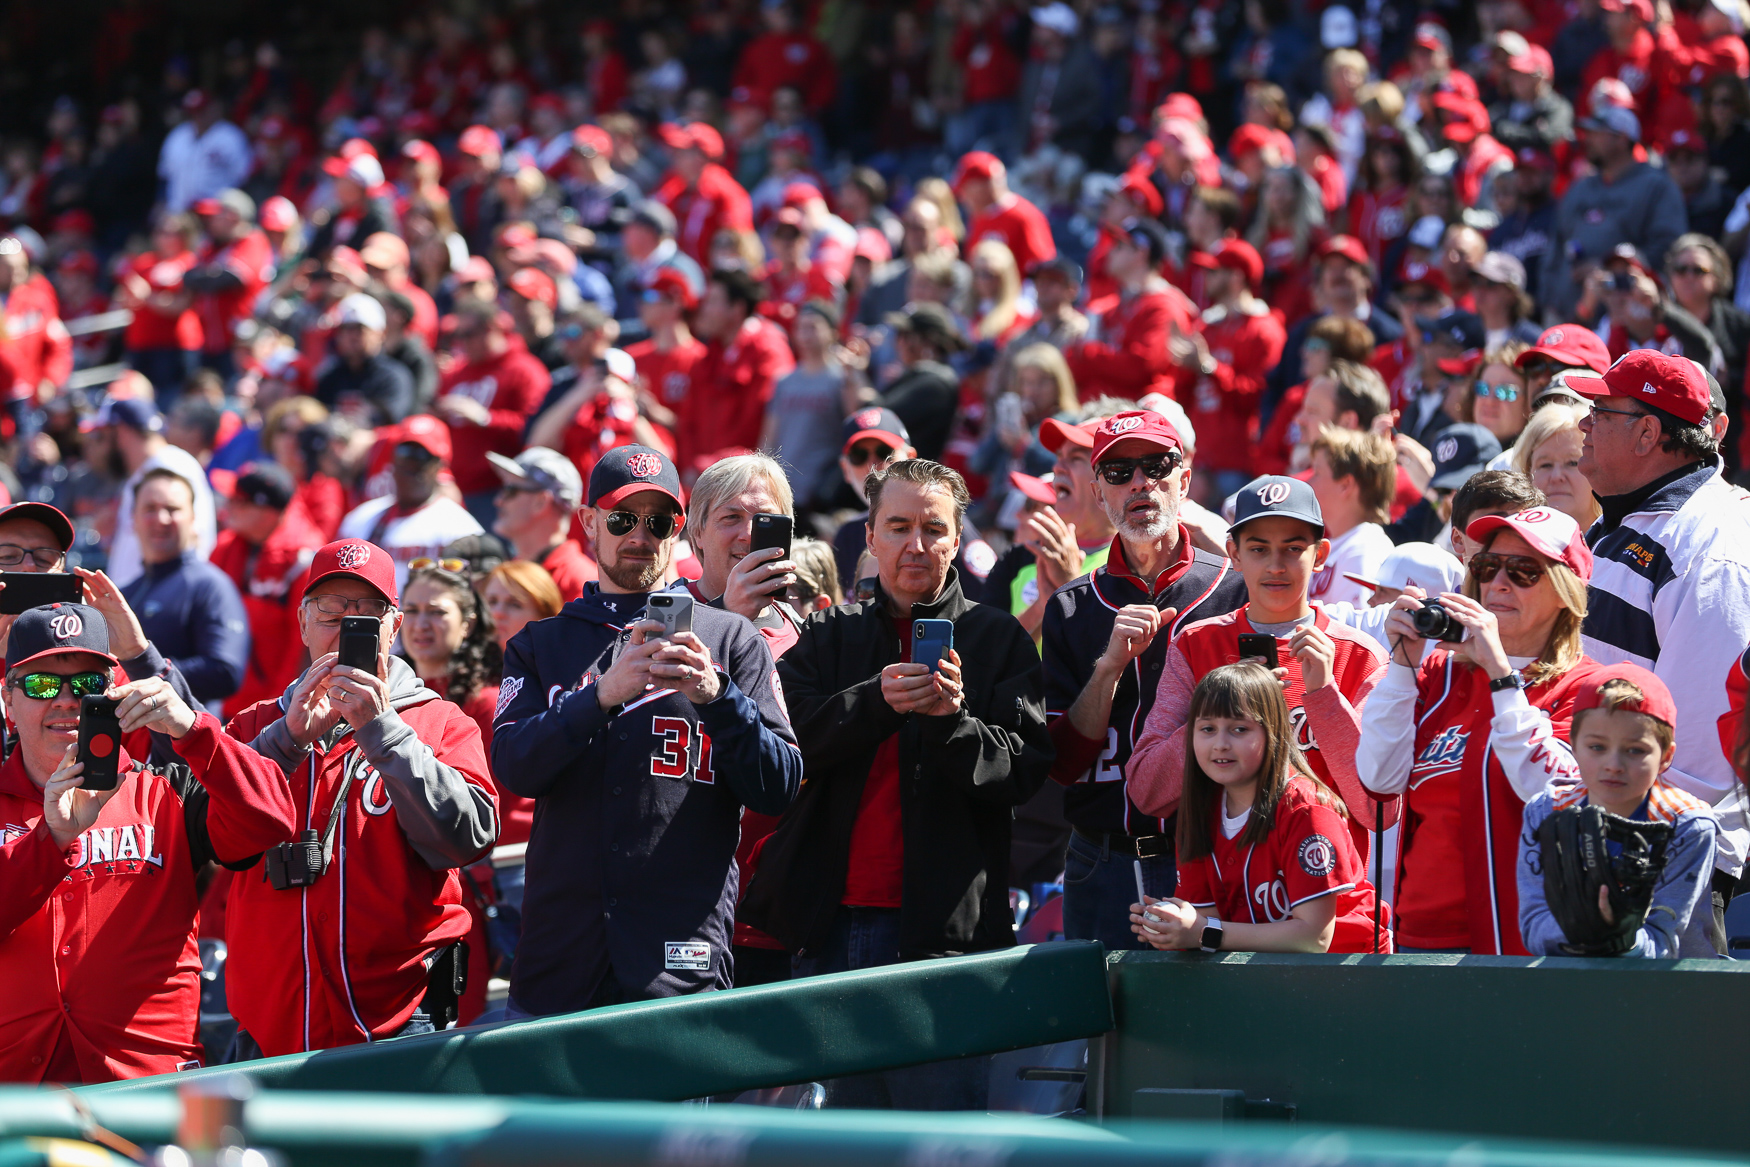 The Washington Nationals are taking on the New York Mets at home for the opening day of the 2019 baseball season. The Nationals acquired several new players this year, but the stars that stayed on got an especially warm reception from the crowd. The game started with a ceremonial opening pitch from{ }